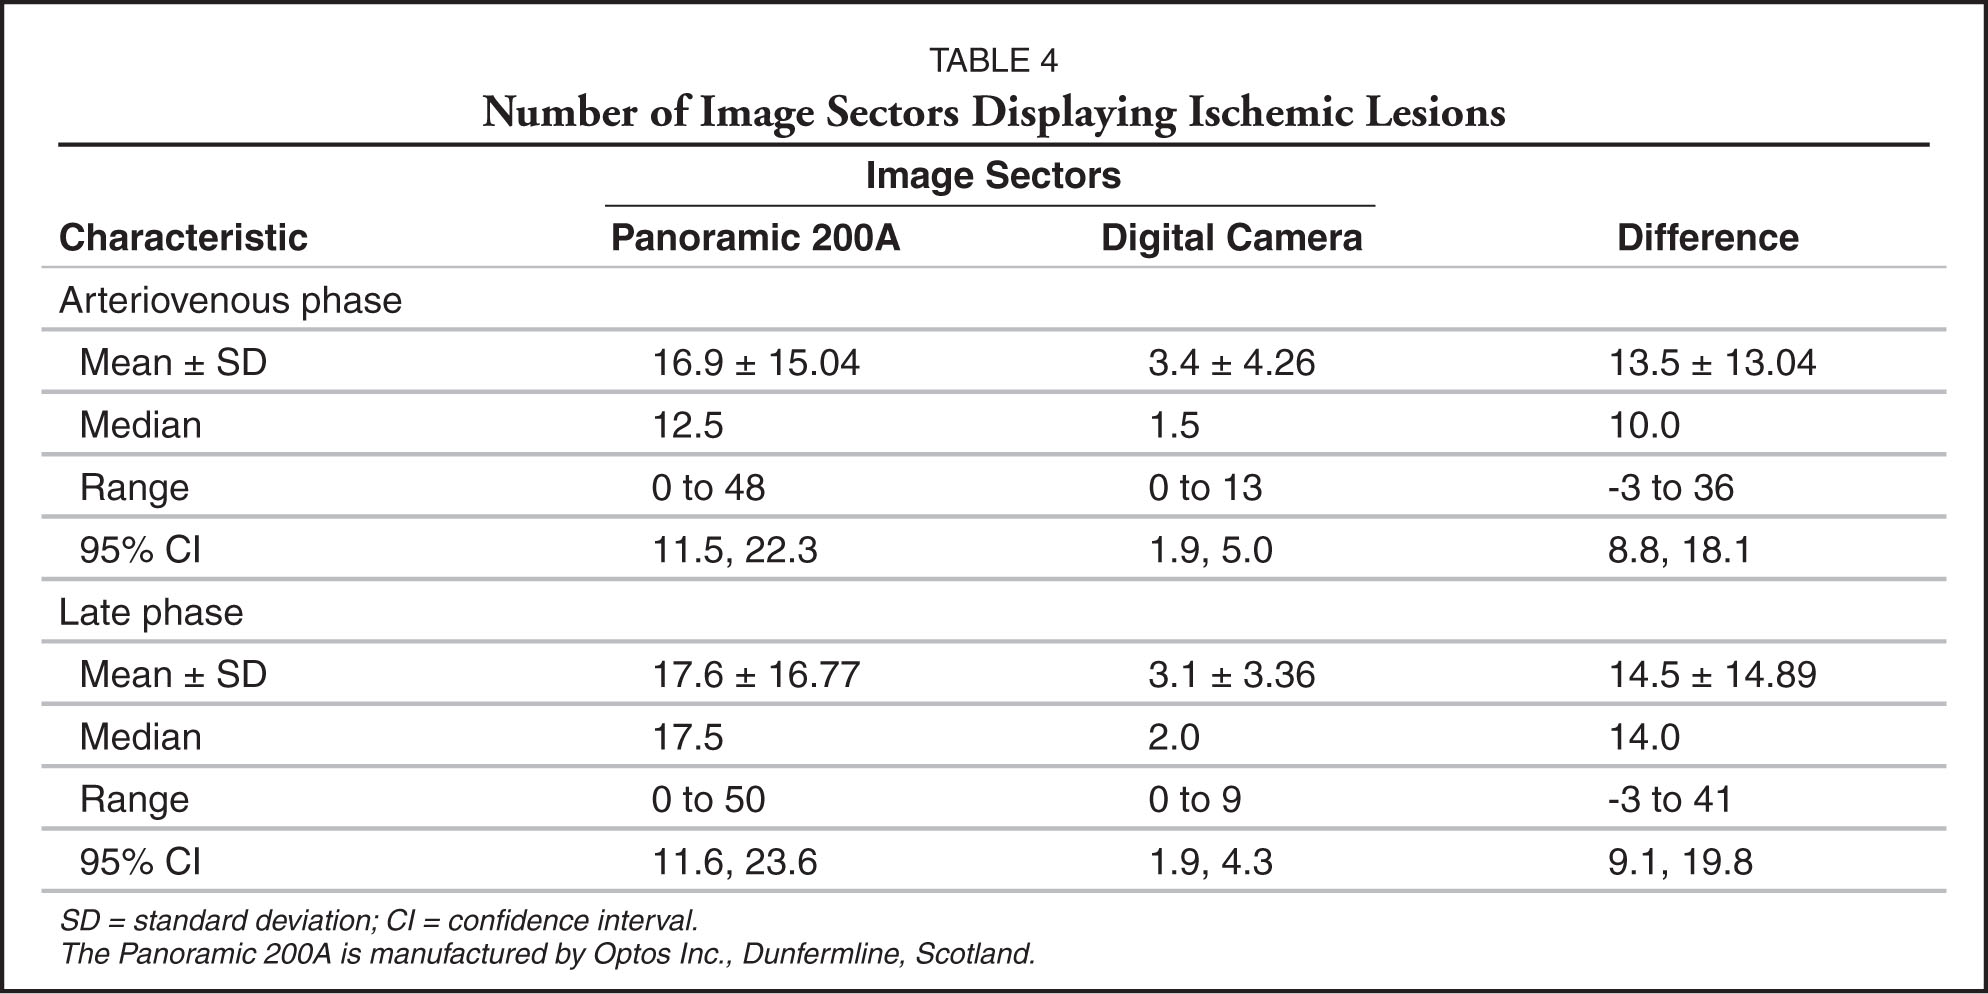 Number of Image Sectors Displaying Ischemic Lesions